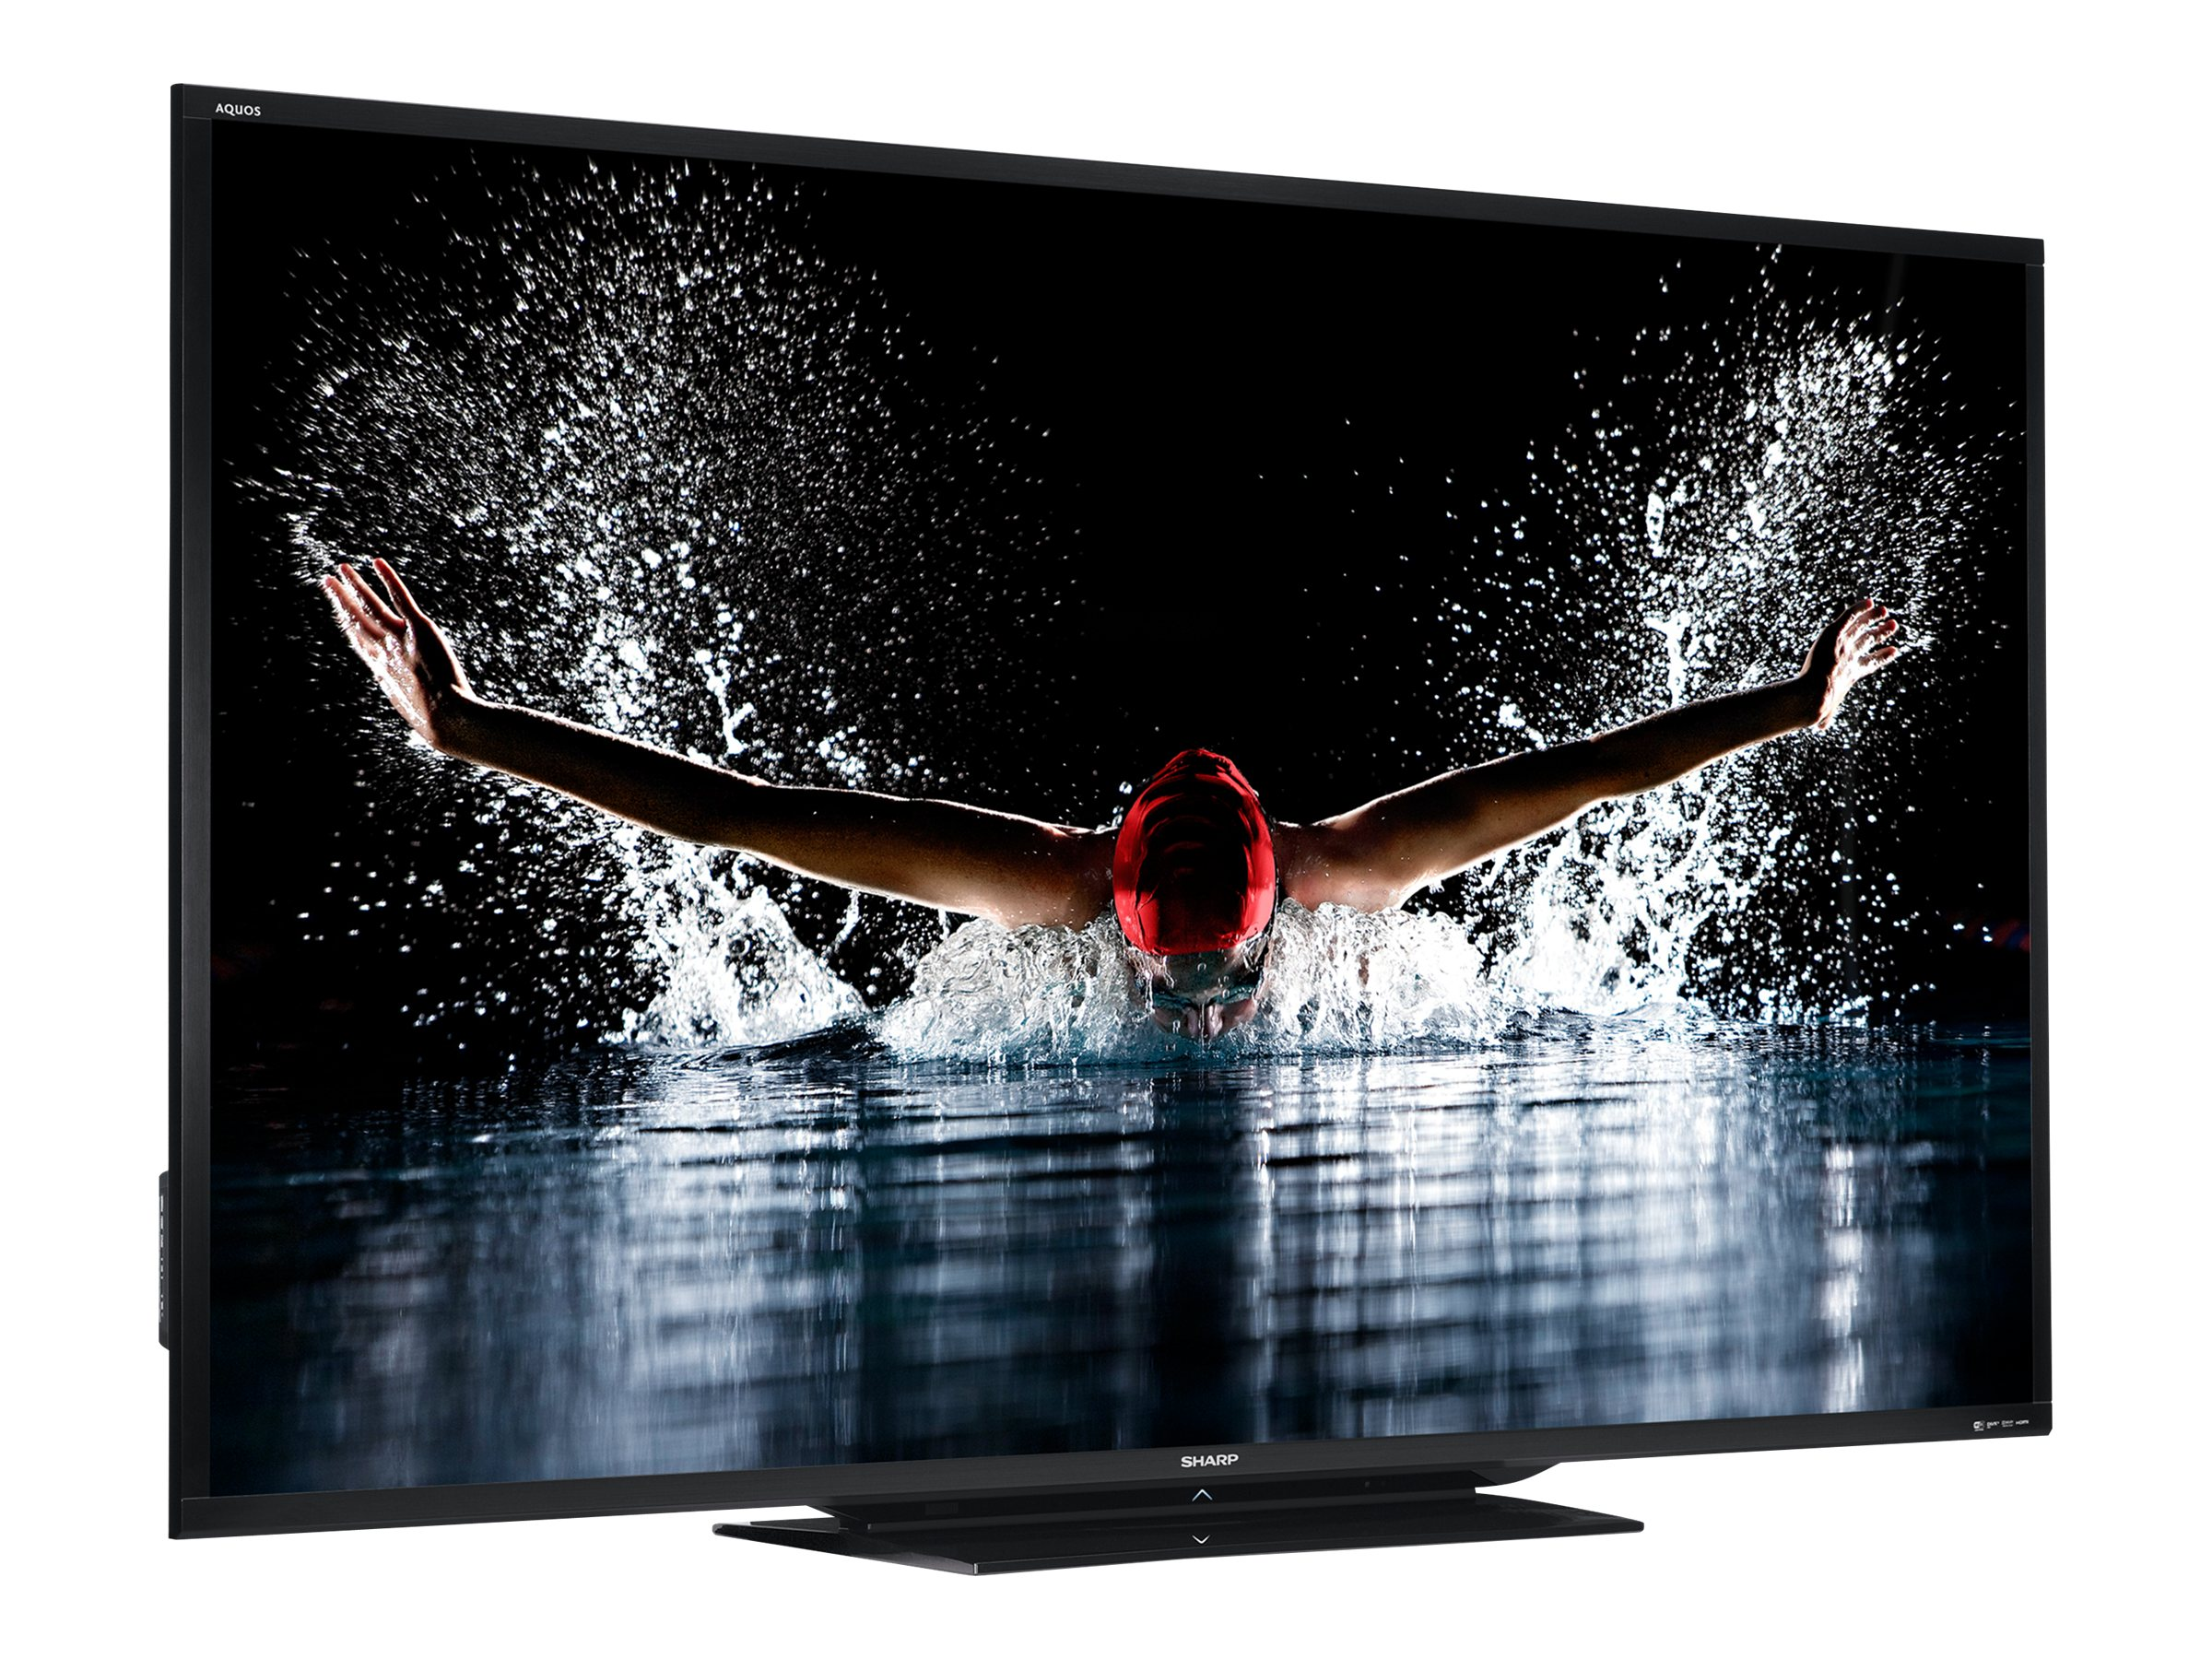 Sharp 90 LC90LE657U Full HD LED-LCD 3D TV, Black, LC90LE657U